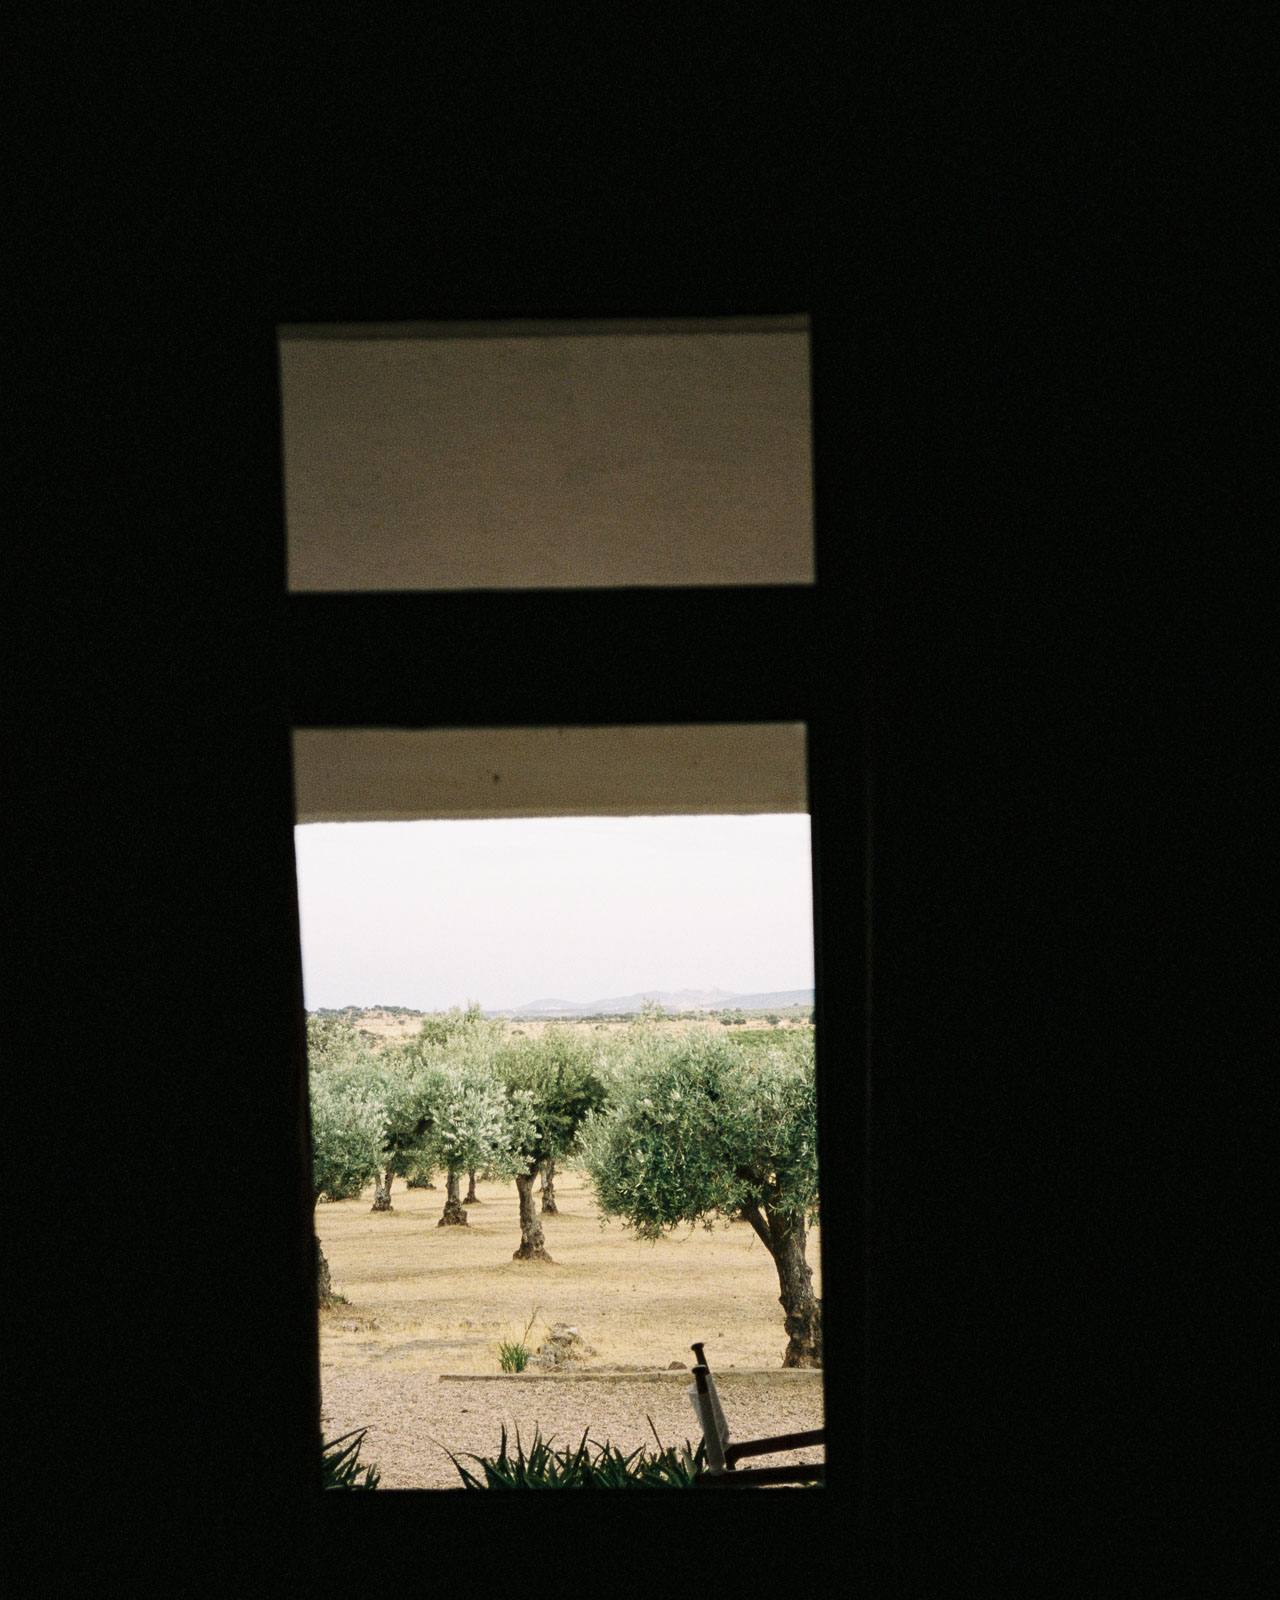 storm wes analog diary portugal 2019 shot with yashica t4 alentejo